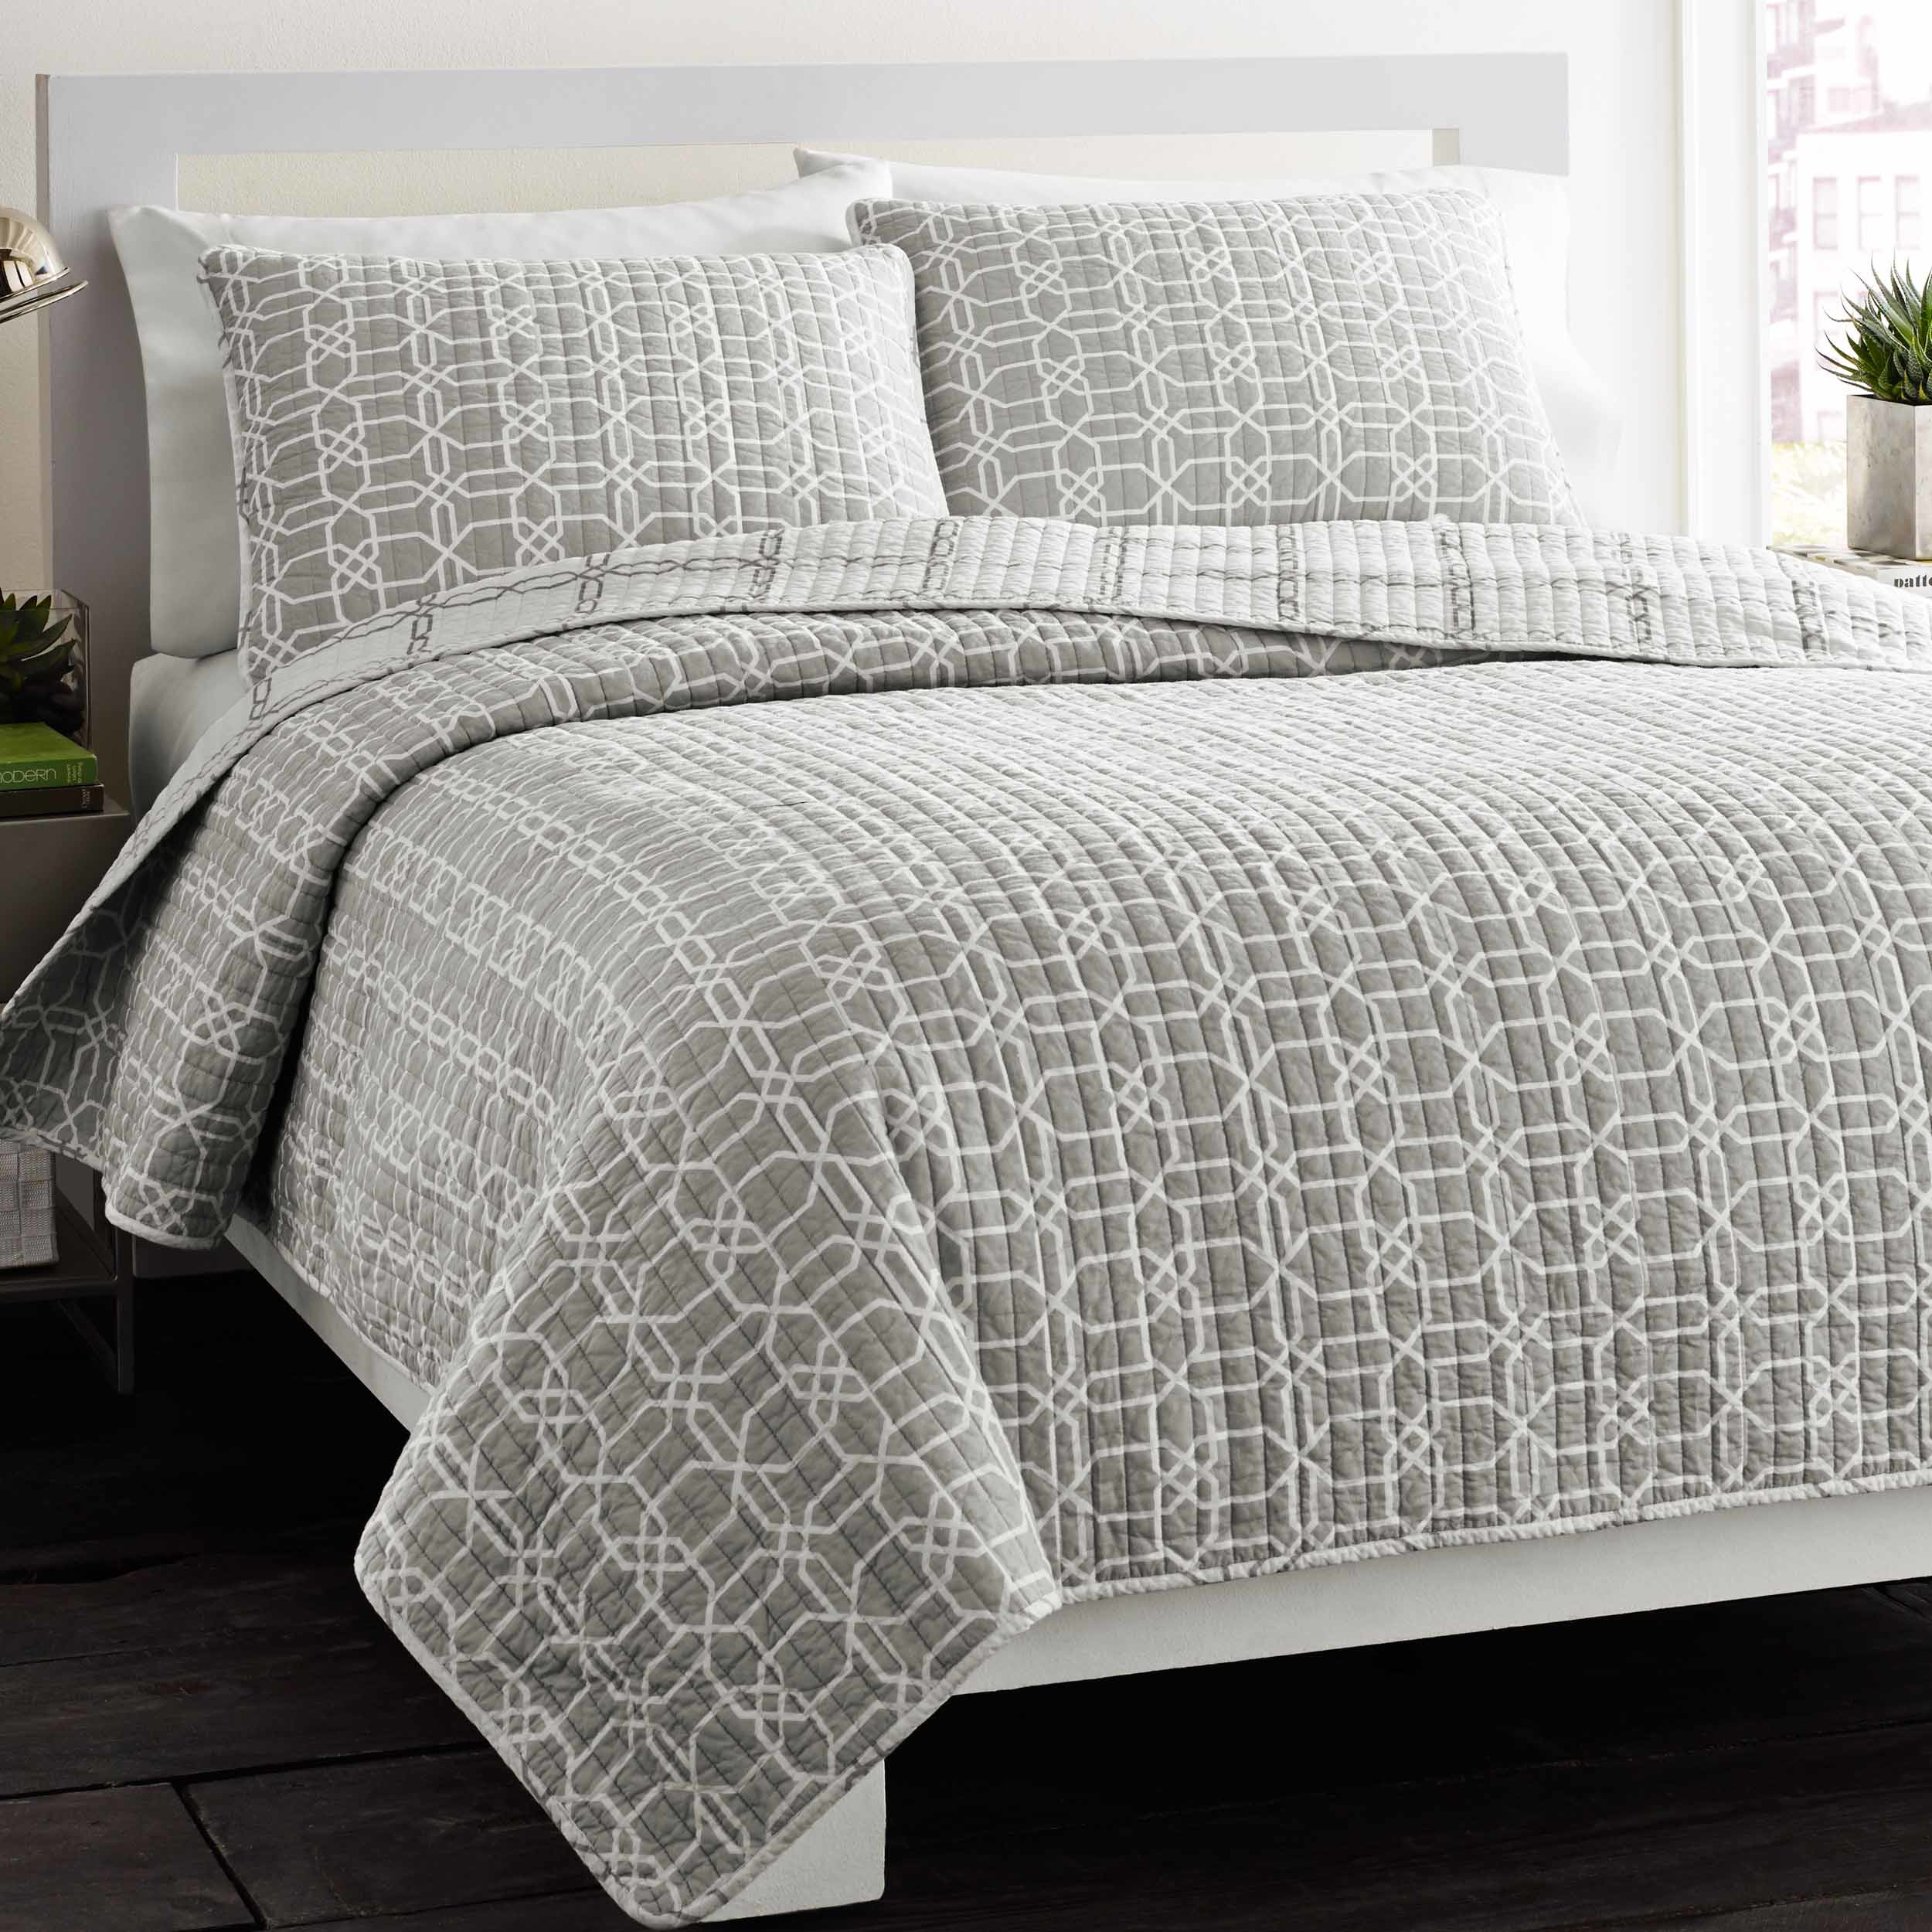 Captivating Cheap Bed Comforters | Sears Comforter Sets | Comforter Sets Sears